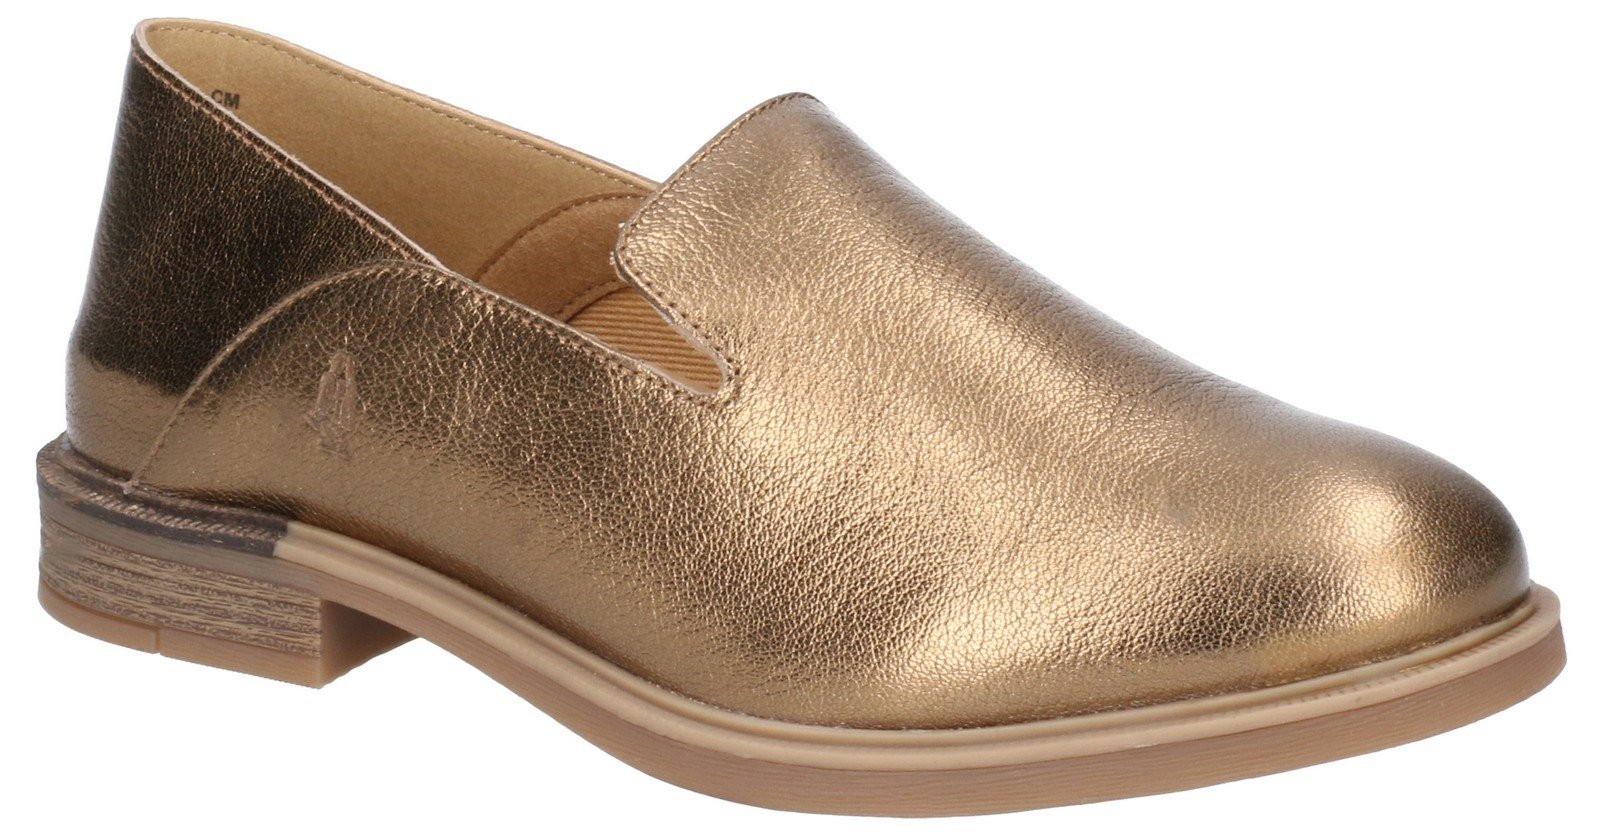 Hush Puppies Women's Bailey Bounce Slip On Flats Various Colours 29224 - Antique Gold Leather 3